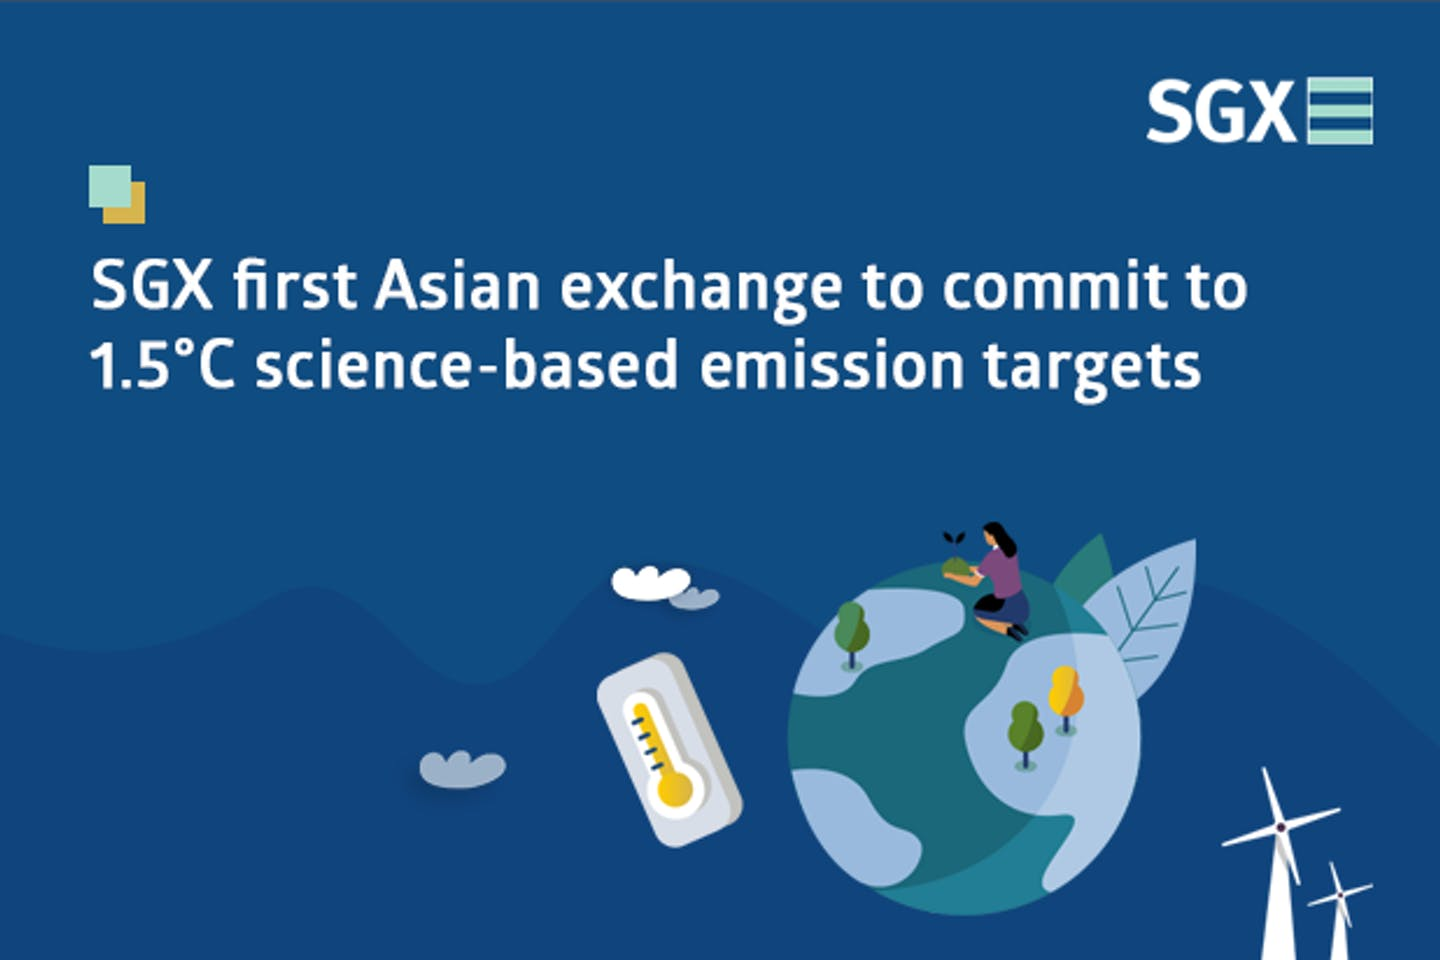 SGX first Asian exchange to commit to 1.5°C-aligned science-based emission reduction targets